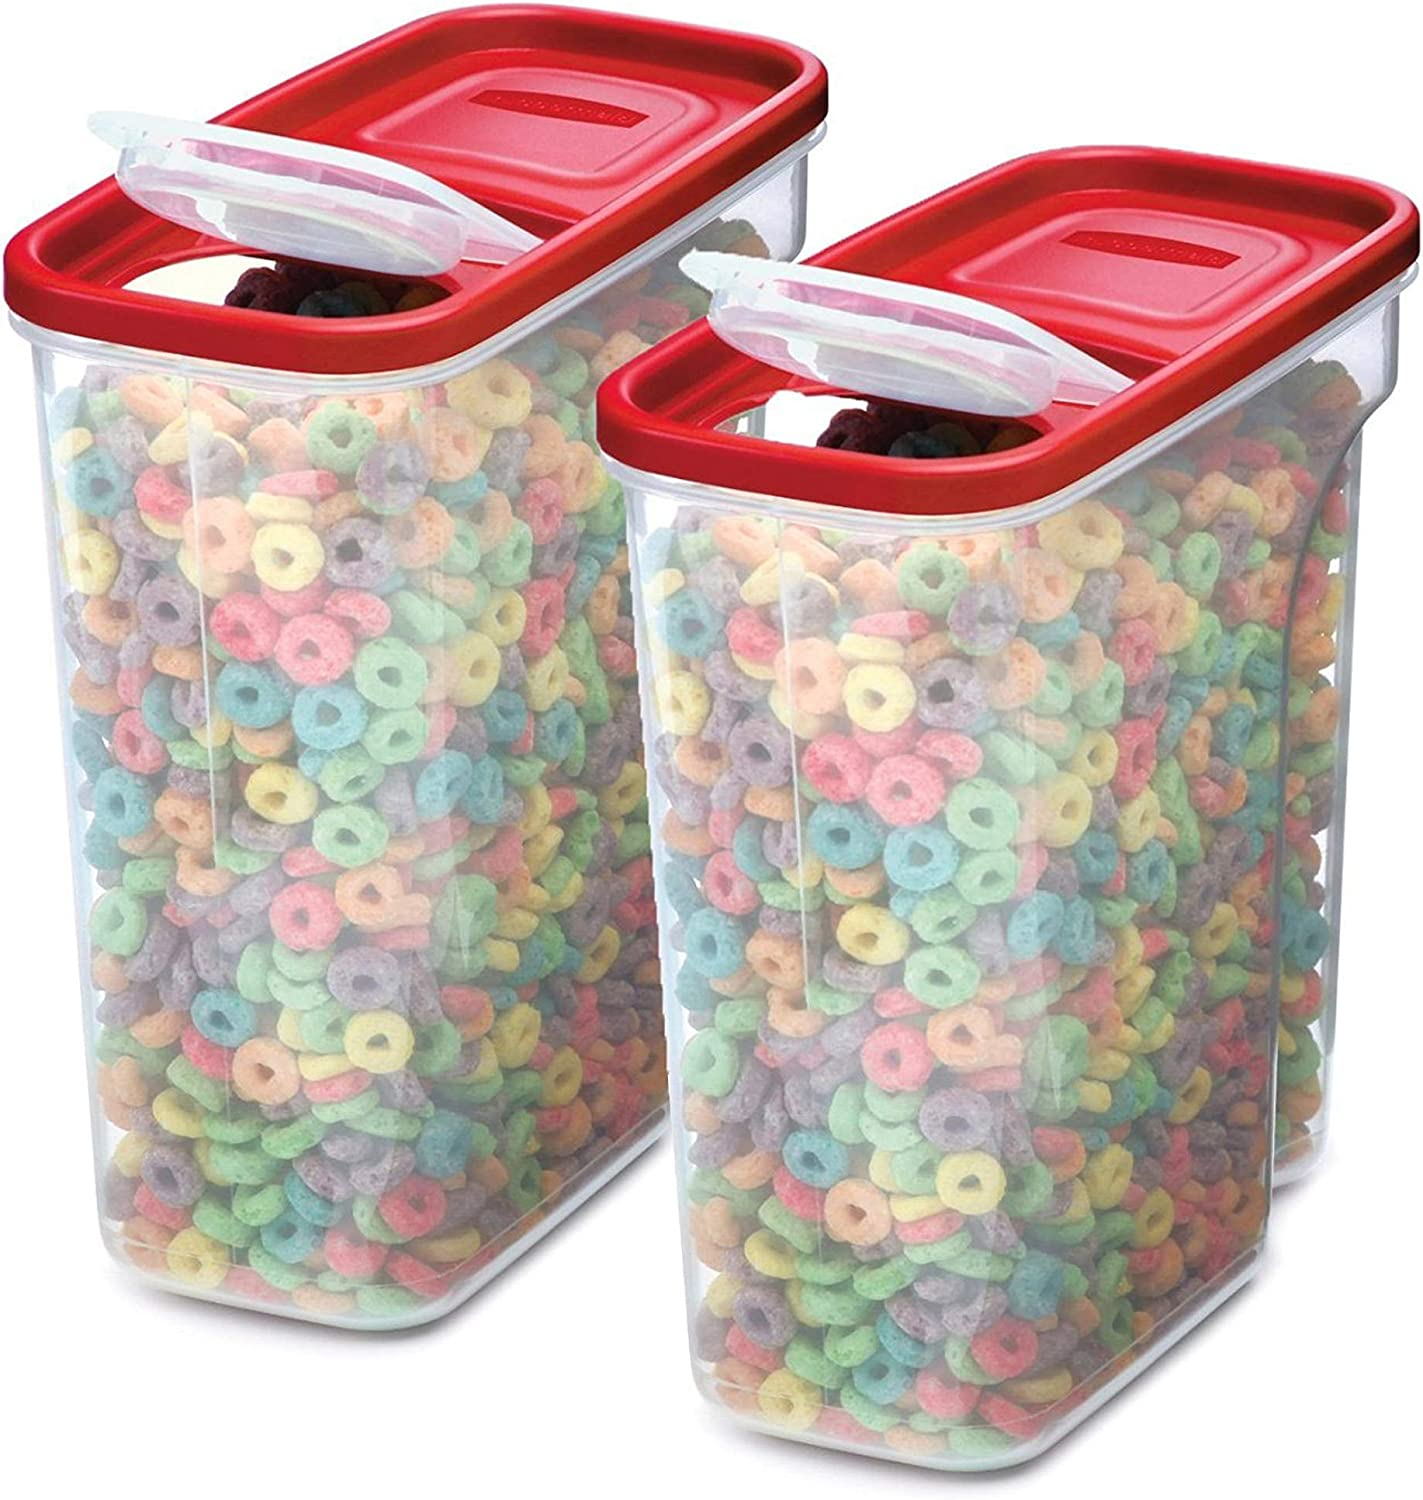 Rubbermaid 2108400 Premium Modular Food Lids | Cereal Keeper, 2-Pack | 18-Cup Stacking, Space Saving Plastic Storage Containers, Clear